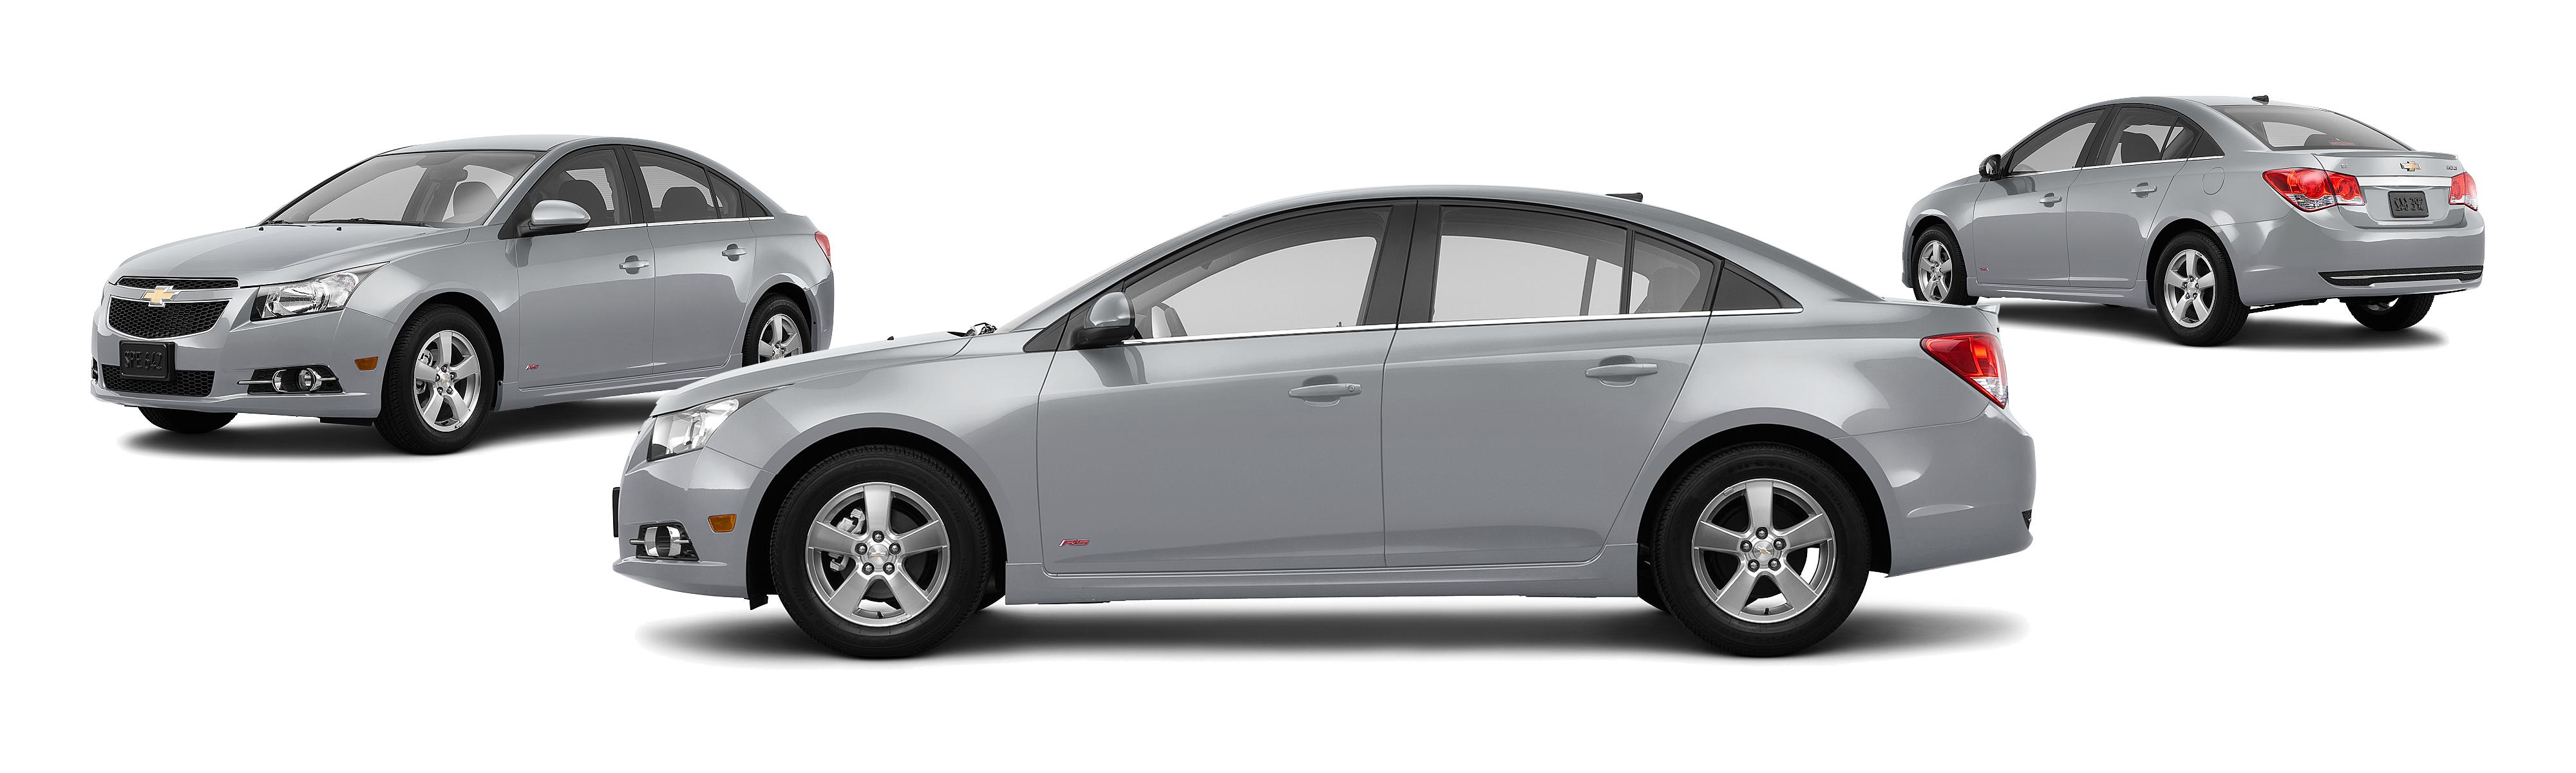 for cruze used vin htm portland chevrolet me limited auburn near augusta lewiston maine sale in